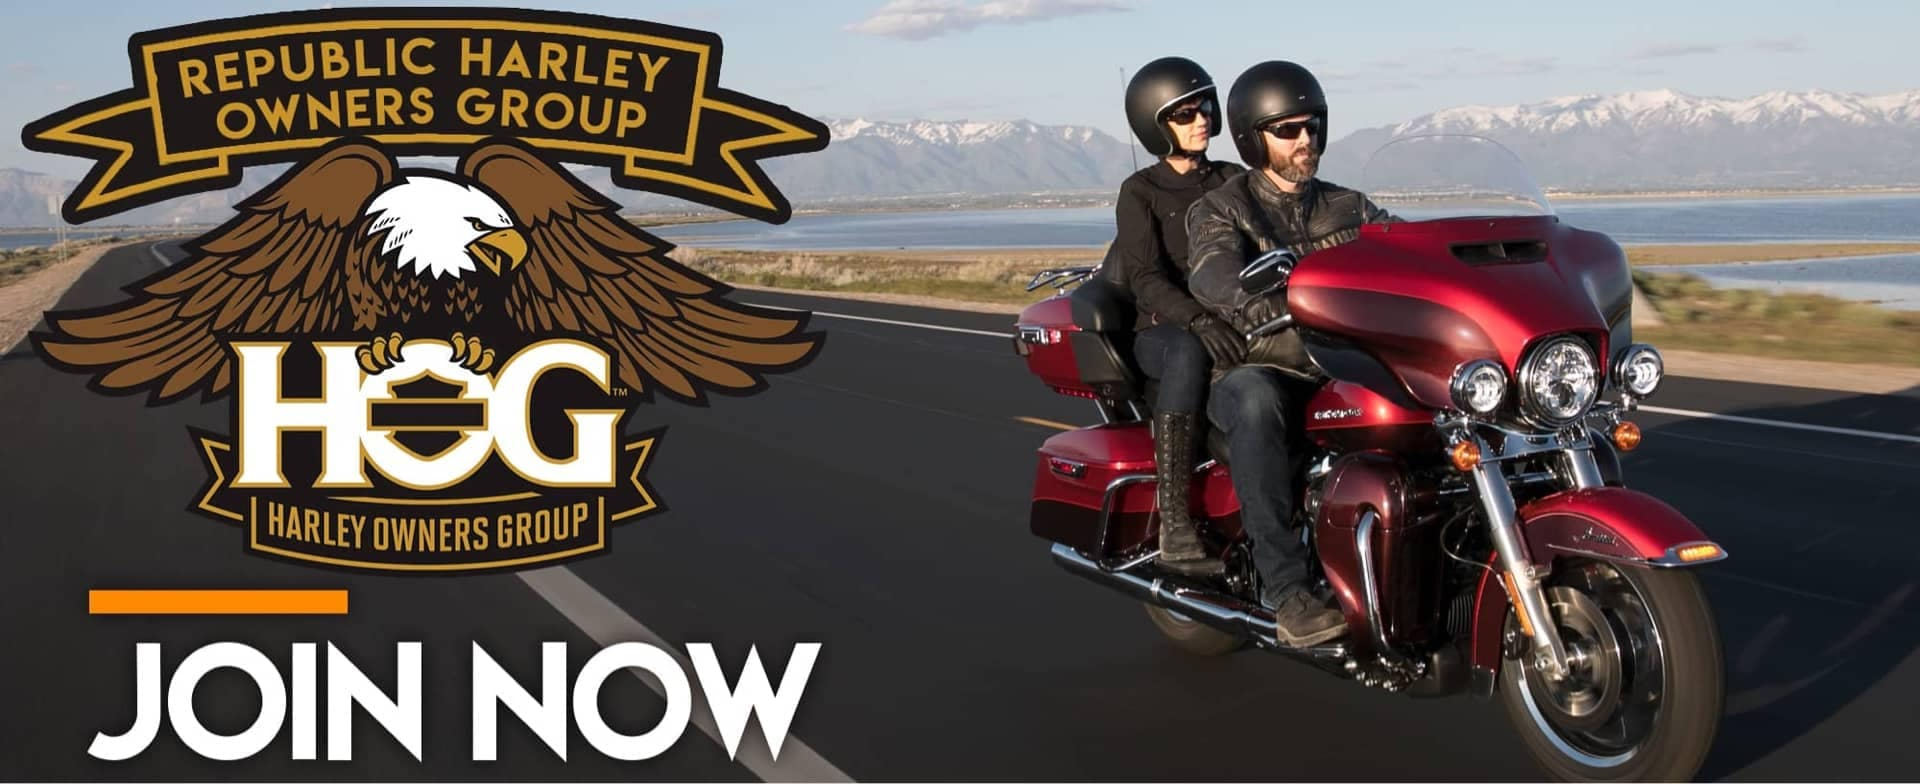 Republic Harley Owners Group Join Now Two people riding on a red Harley Davidson